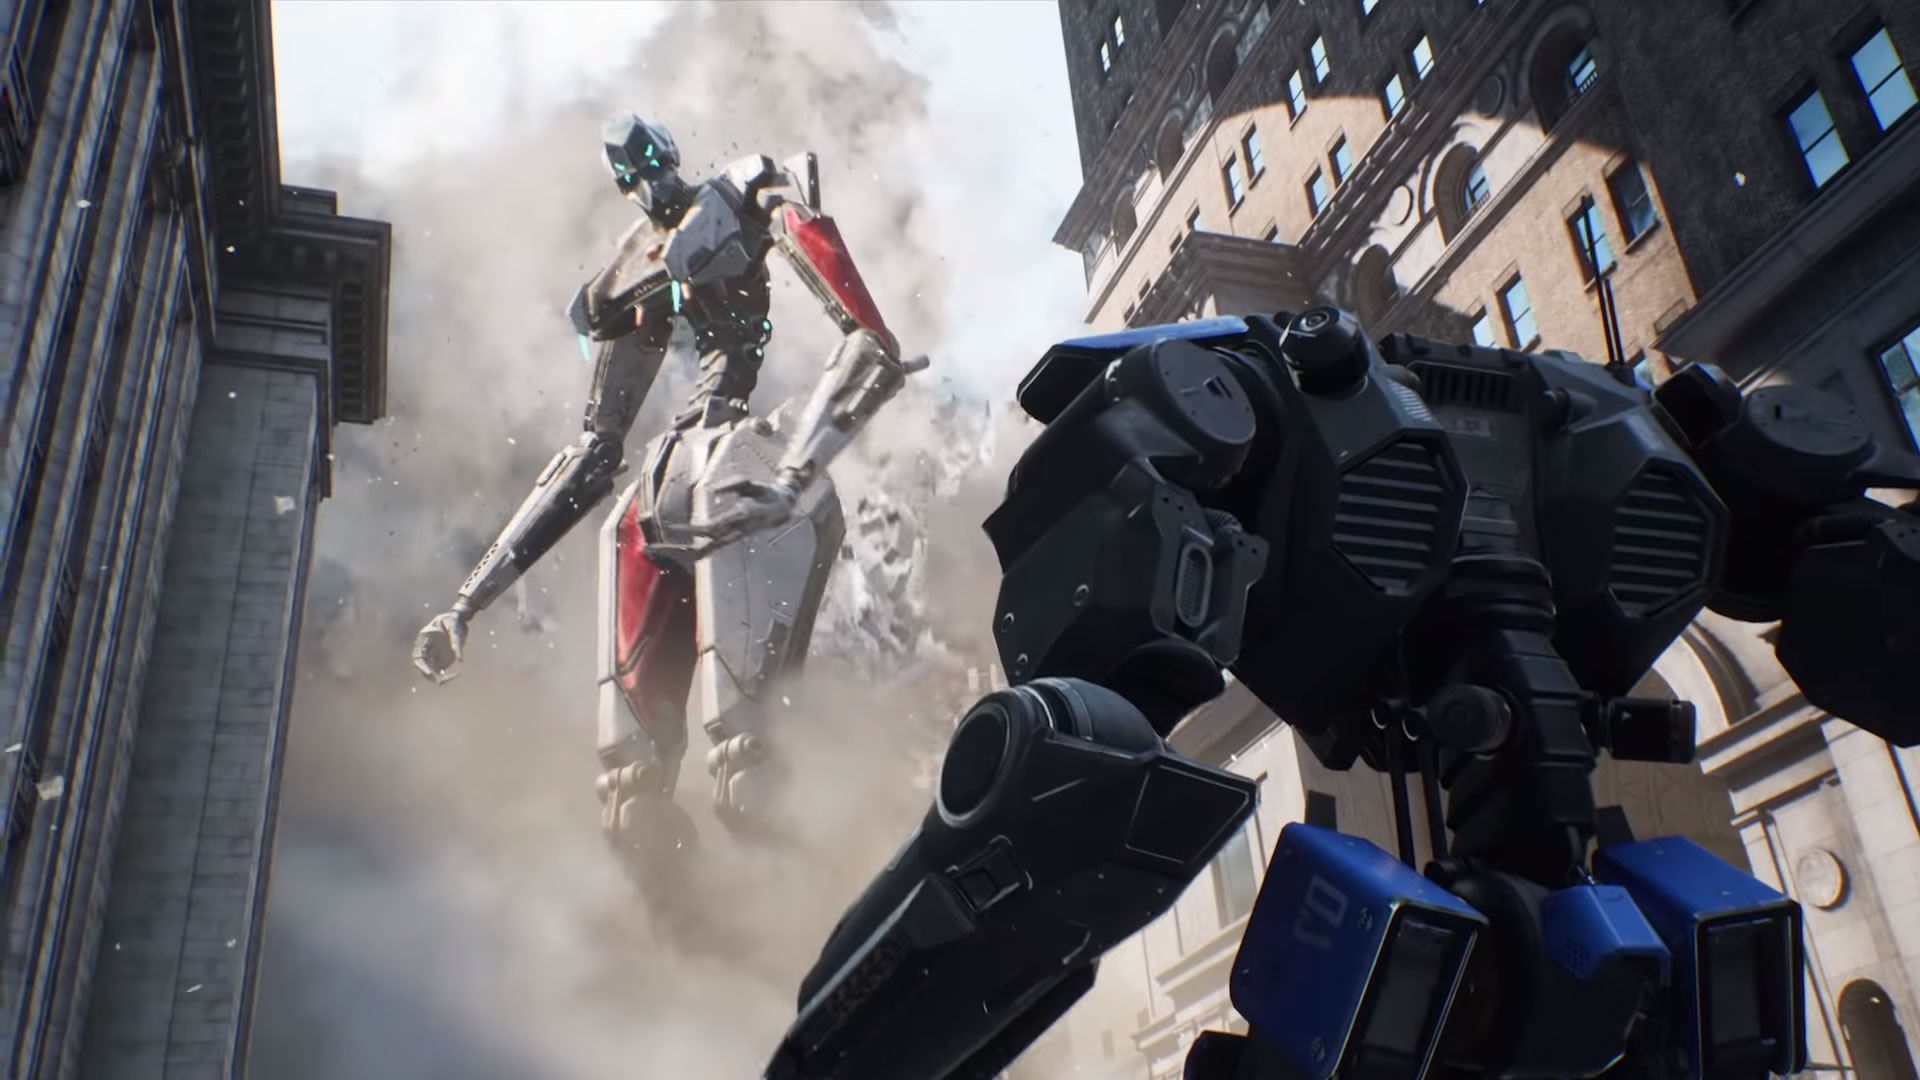 Watch this: Unreal Engine's latest tech demo showcases 'high